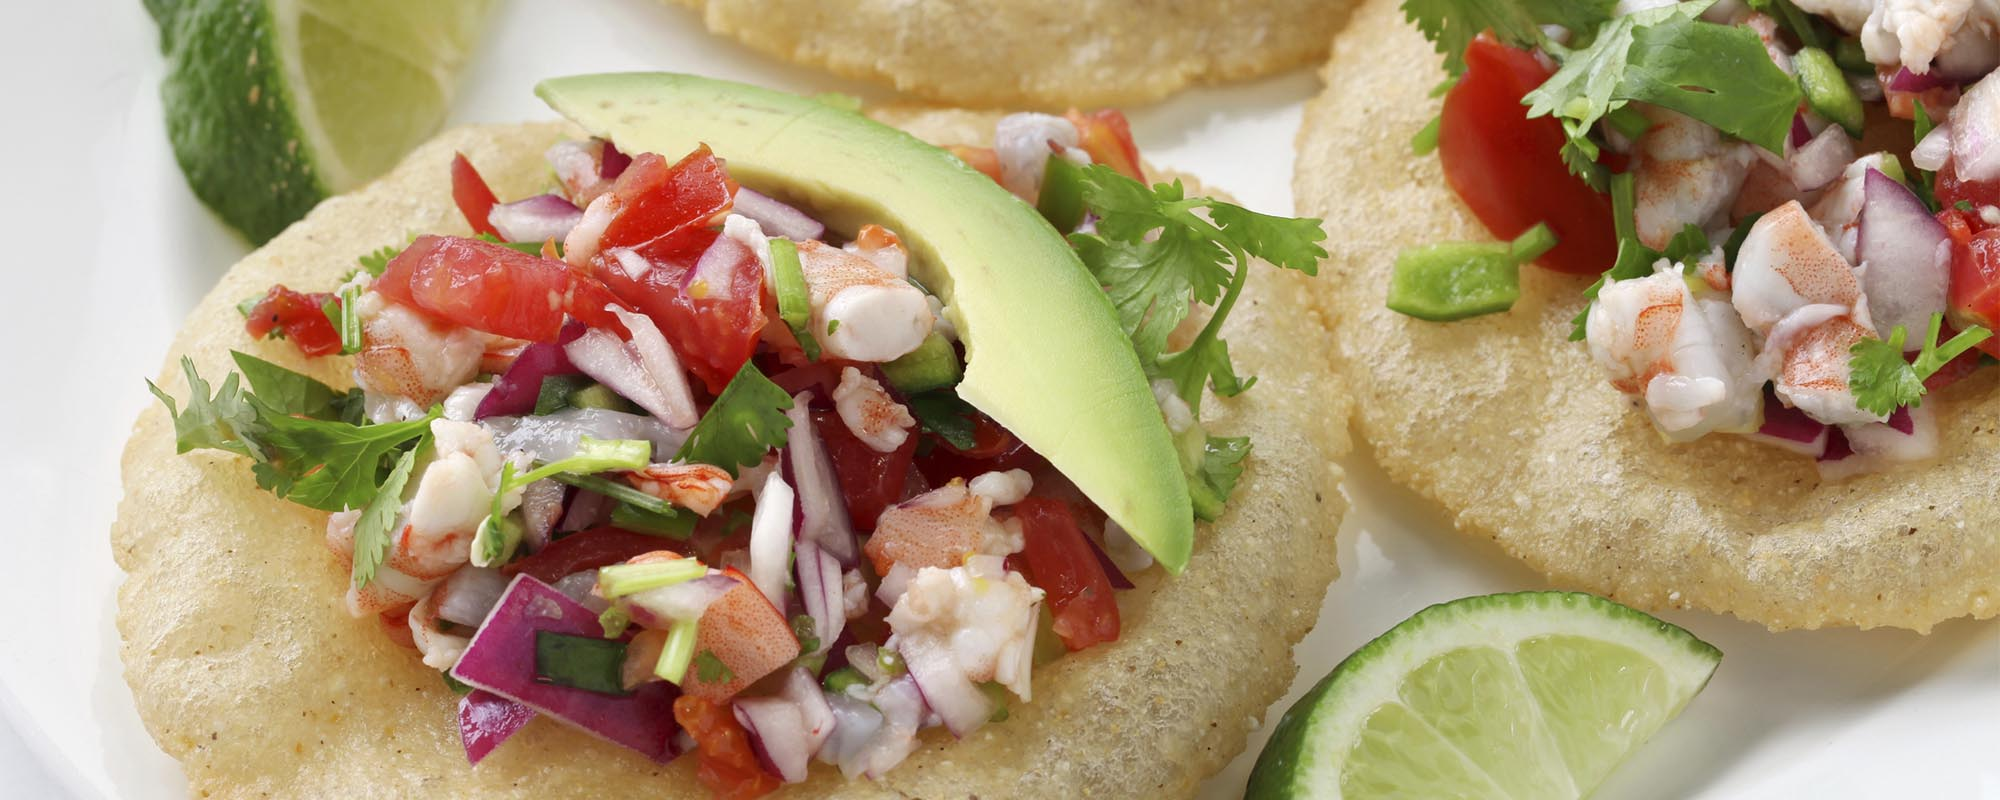 MAIZADA CORN TOSTADA WITH CEVICHE